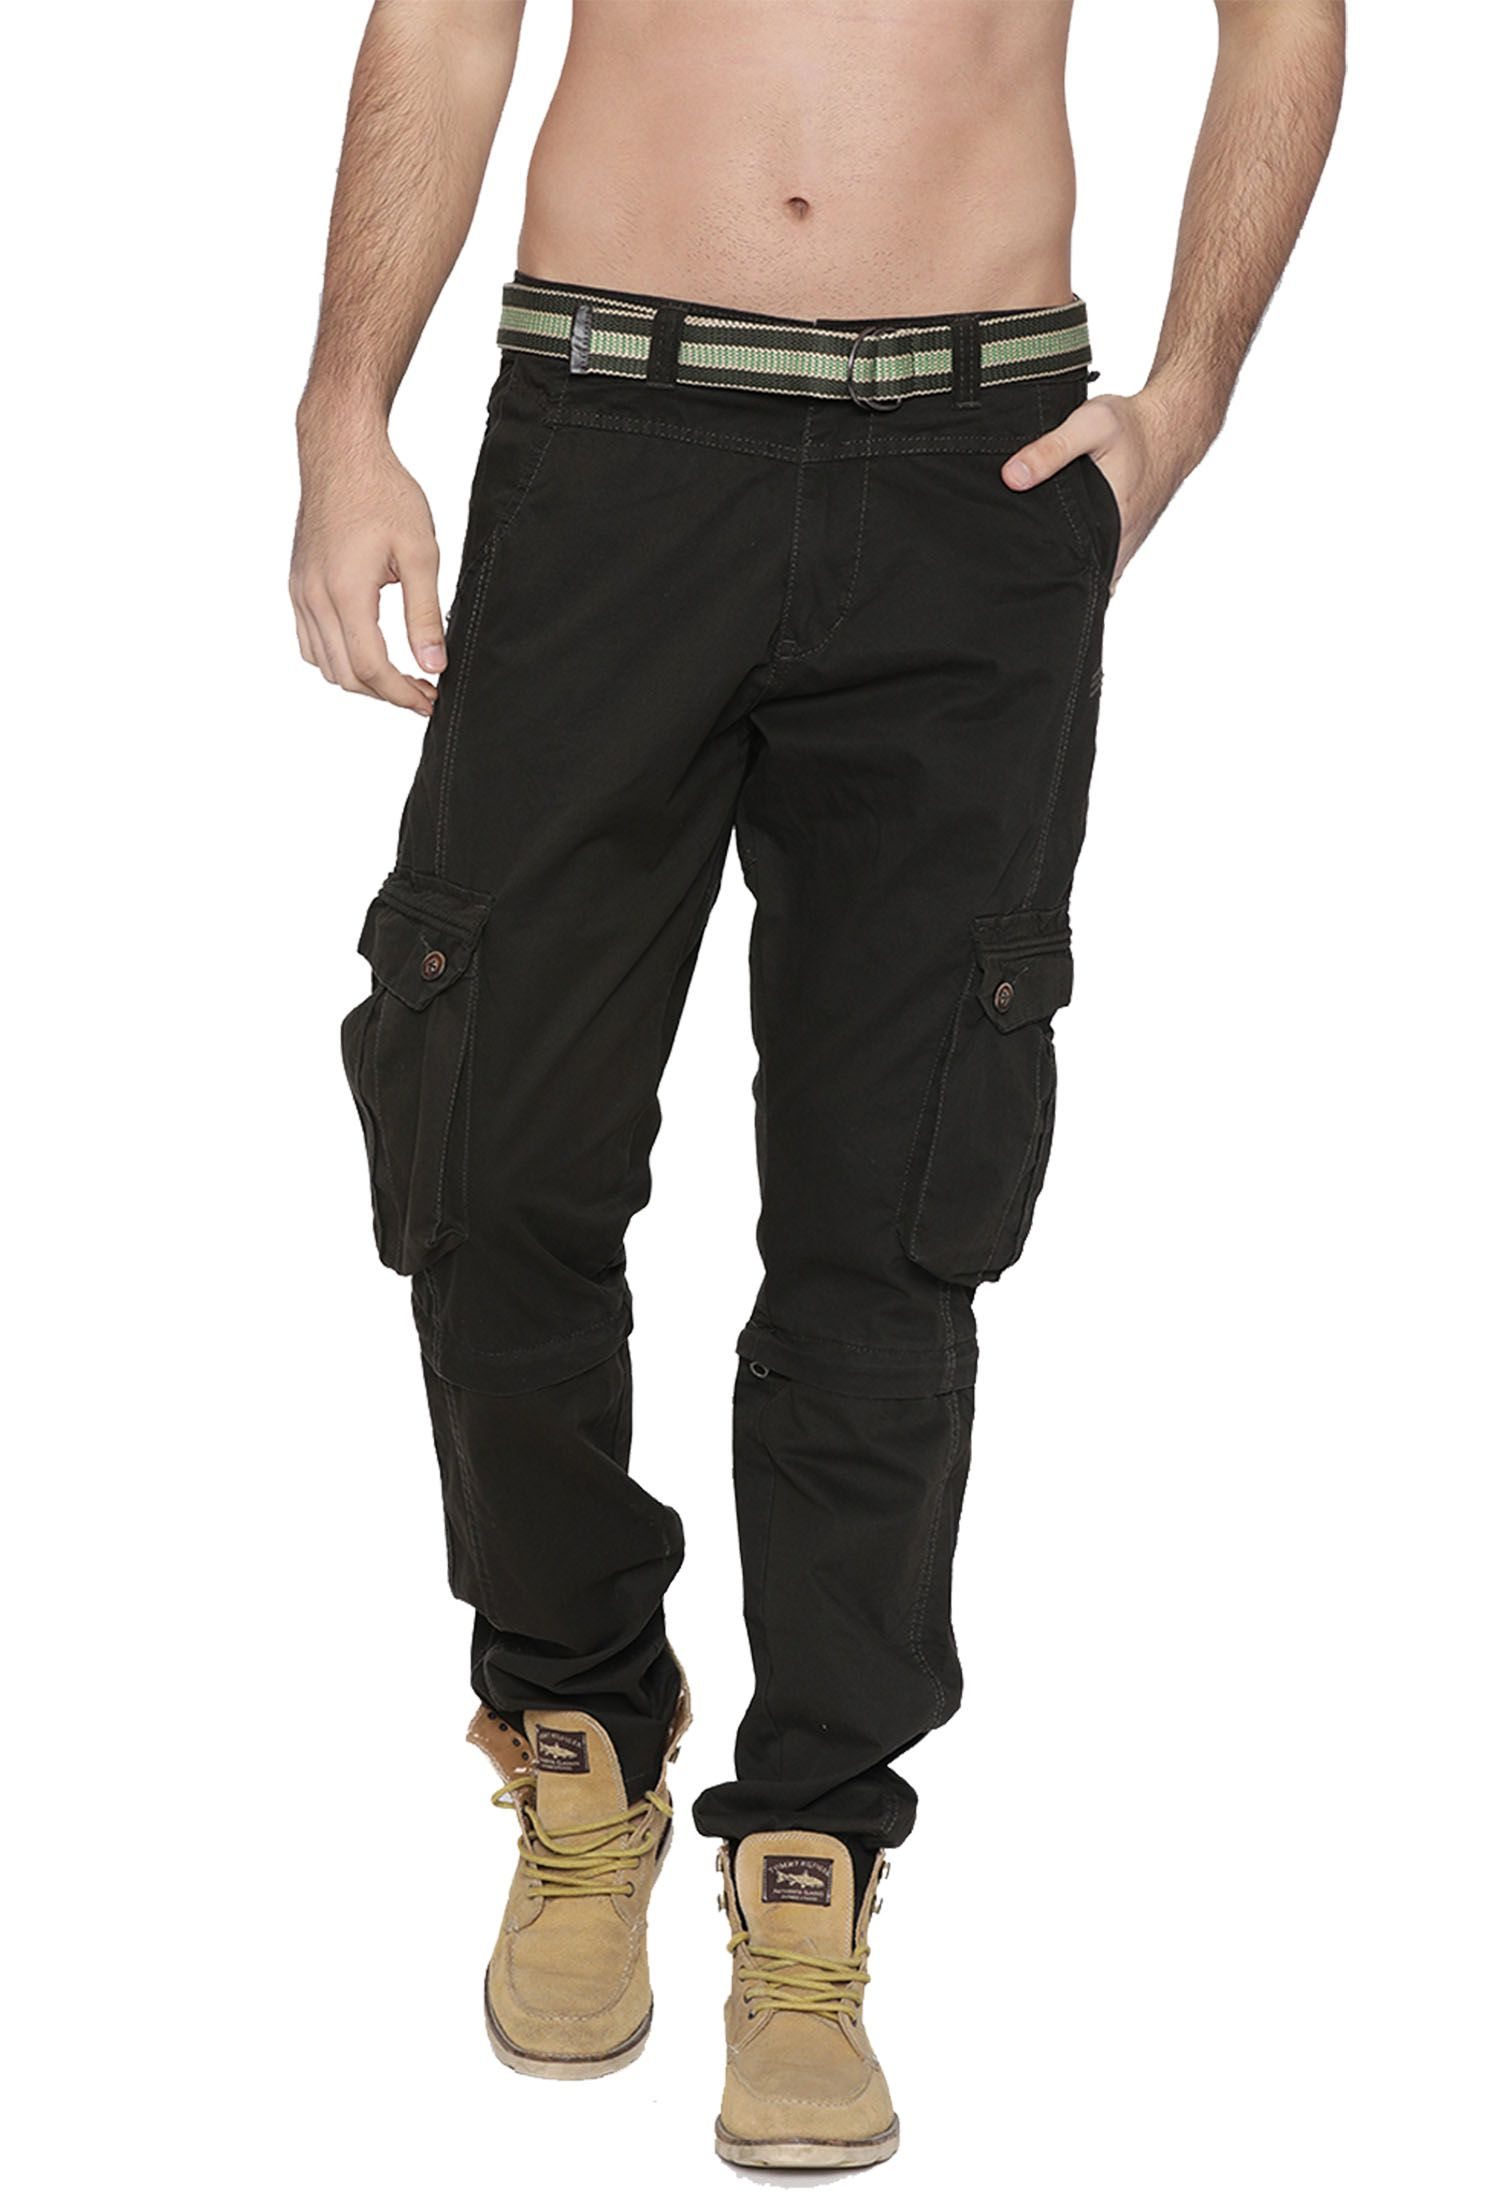 FIFTY TWO Olive Green Regular -Fit Flat Cargos